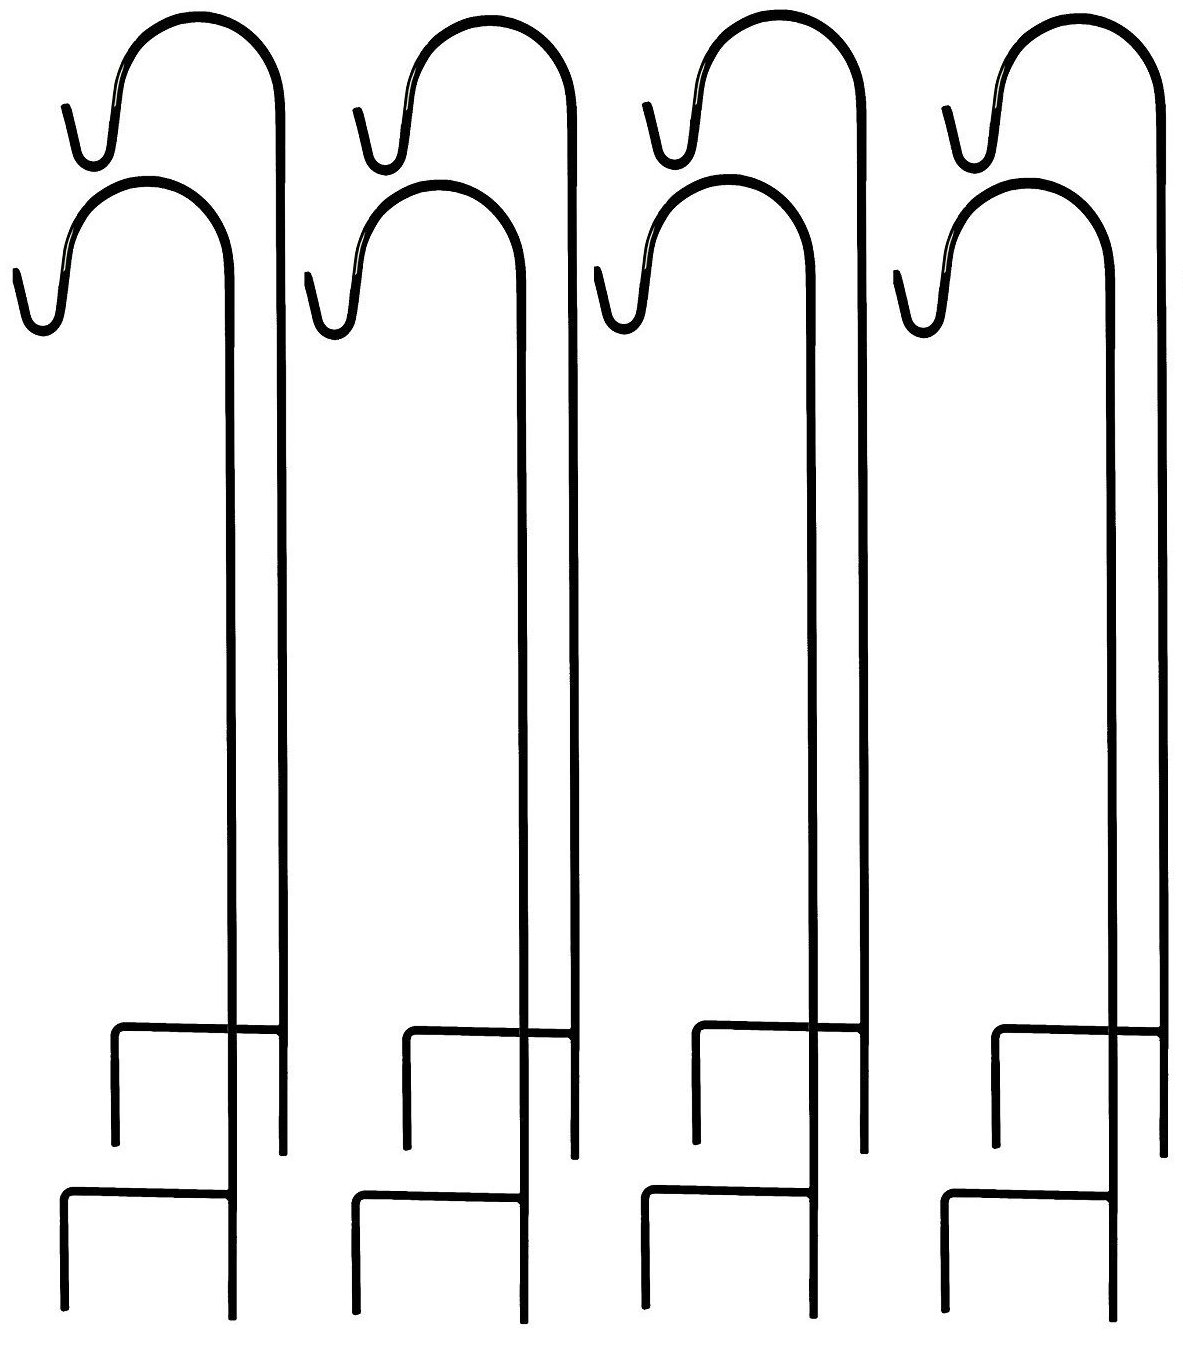 Ashman Shepherd's Hooks Set of 8 and 35 Inches long made of Premium Metal for Hanging Solar Lights, Mason Jars, Plant Hangers, Christmas Lights, Lanterns, Garden Stakes and Wedding Decor